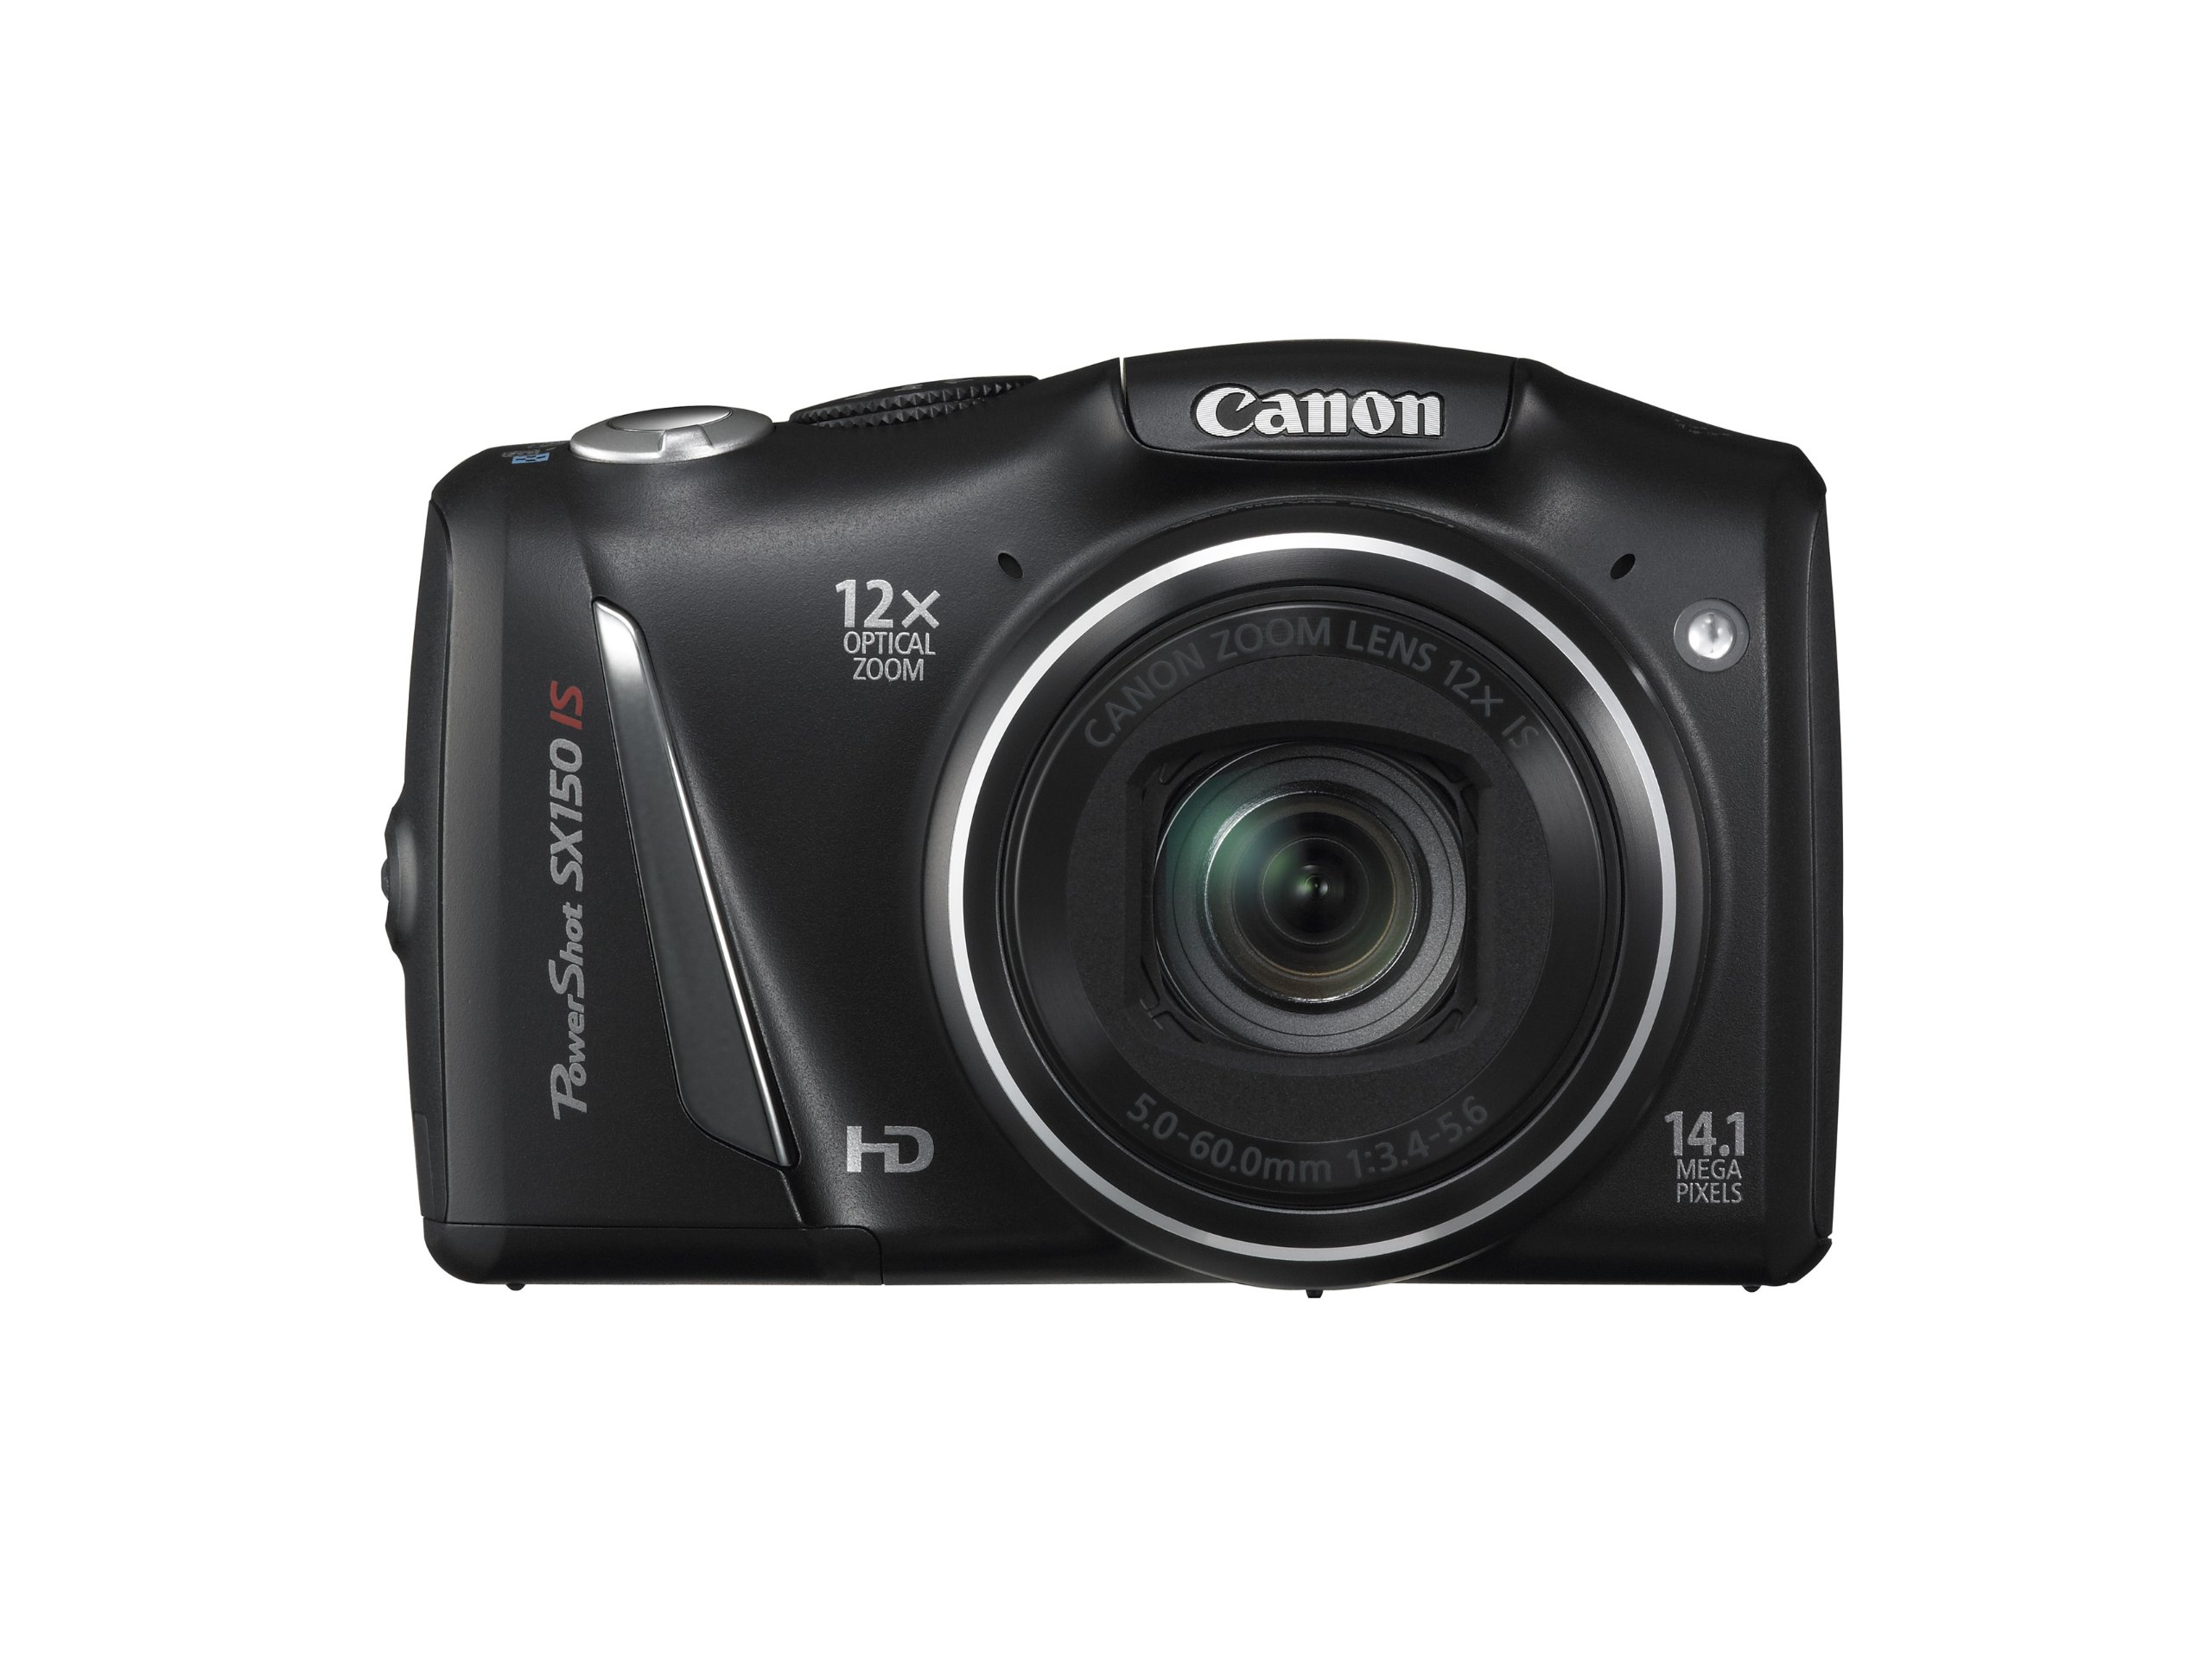 Canon PowerShot SX150 IS 14.1 MP Digital Camera with 12x Wide-Angle Optical Image Stabilized Zoom with 3.0-Inch LCD (Black) (OLD MODEL) by Canon